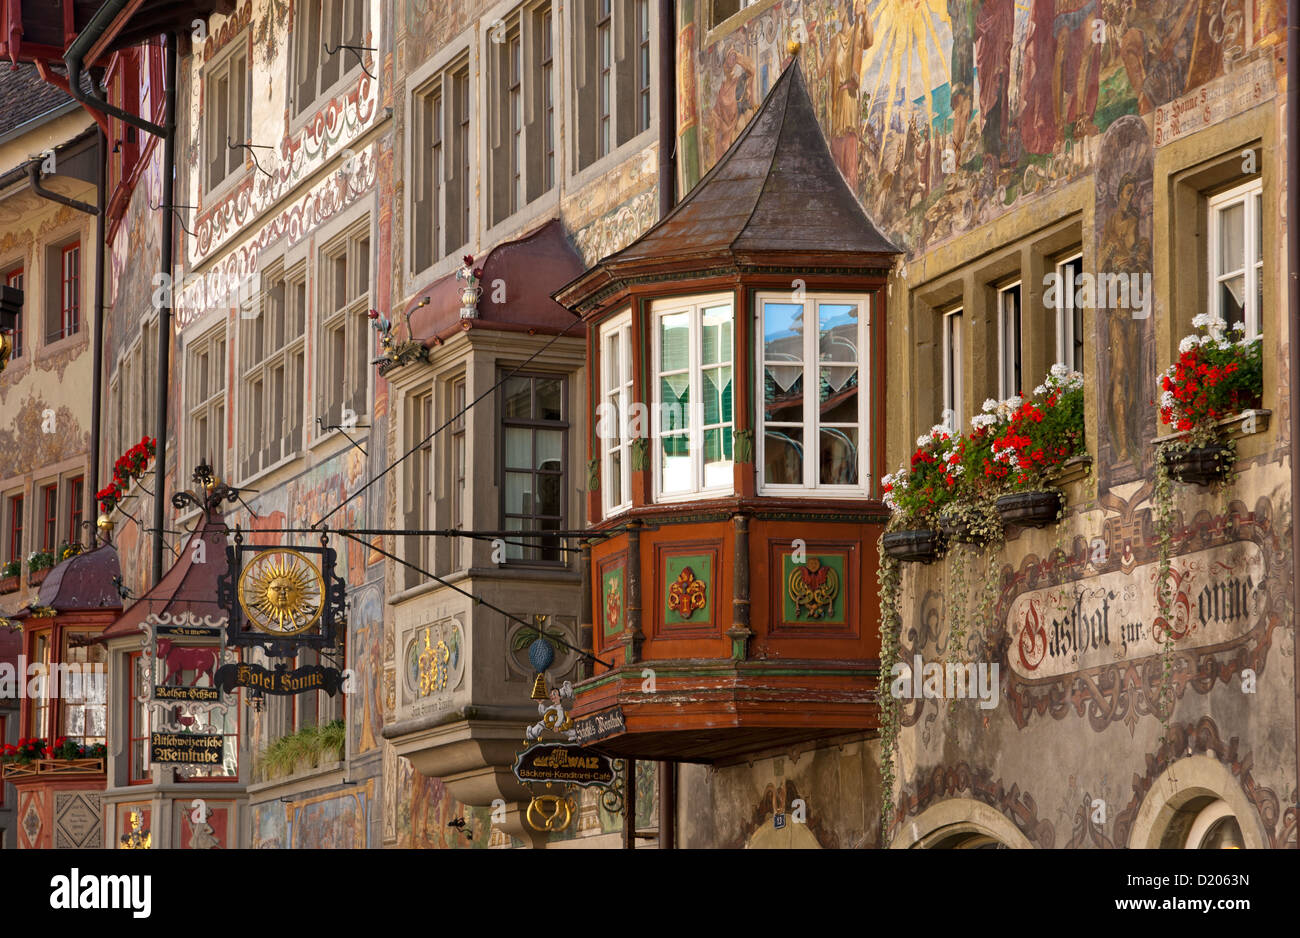 Murals on the facades on buildings at Rathausplatz square in the old town, Stein am Rhein, Canton of Schaffhausen, - Stock Image